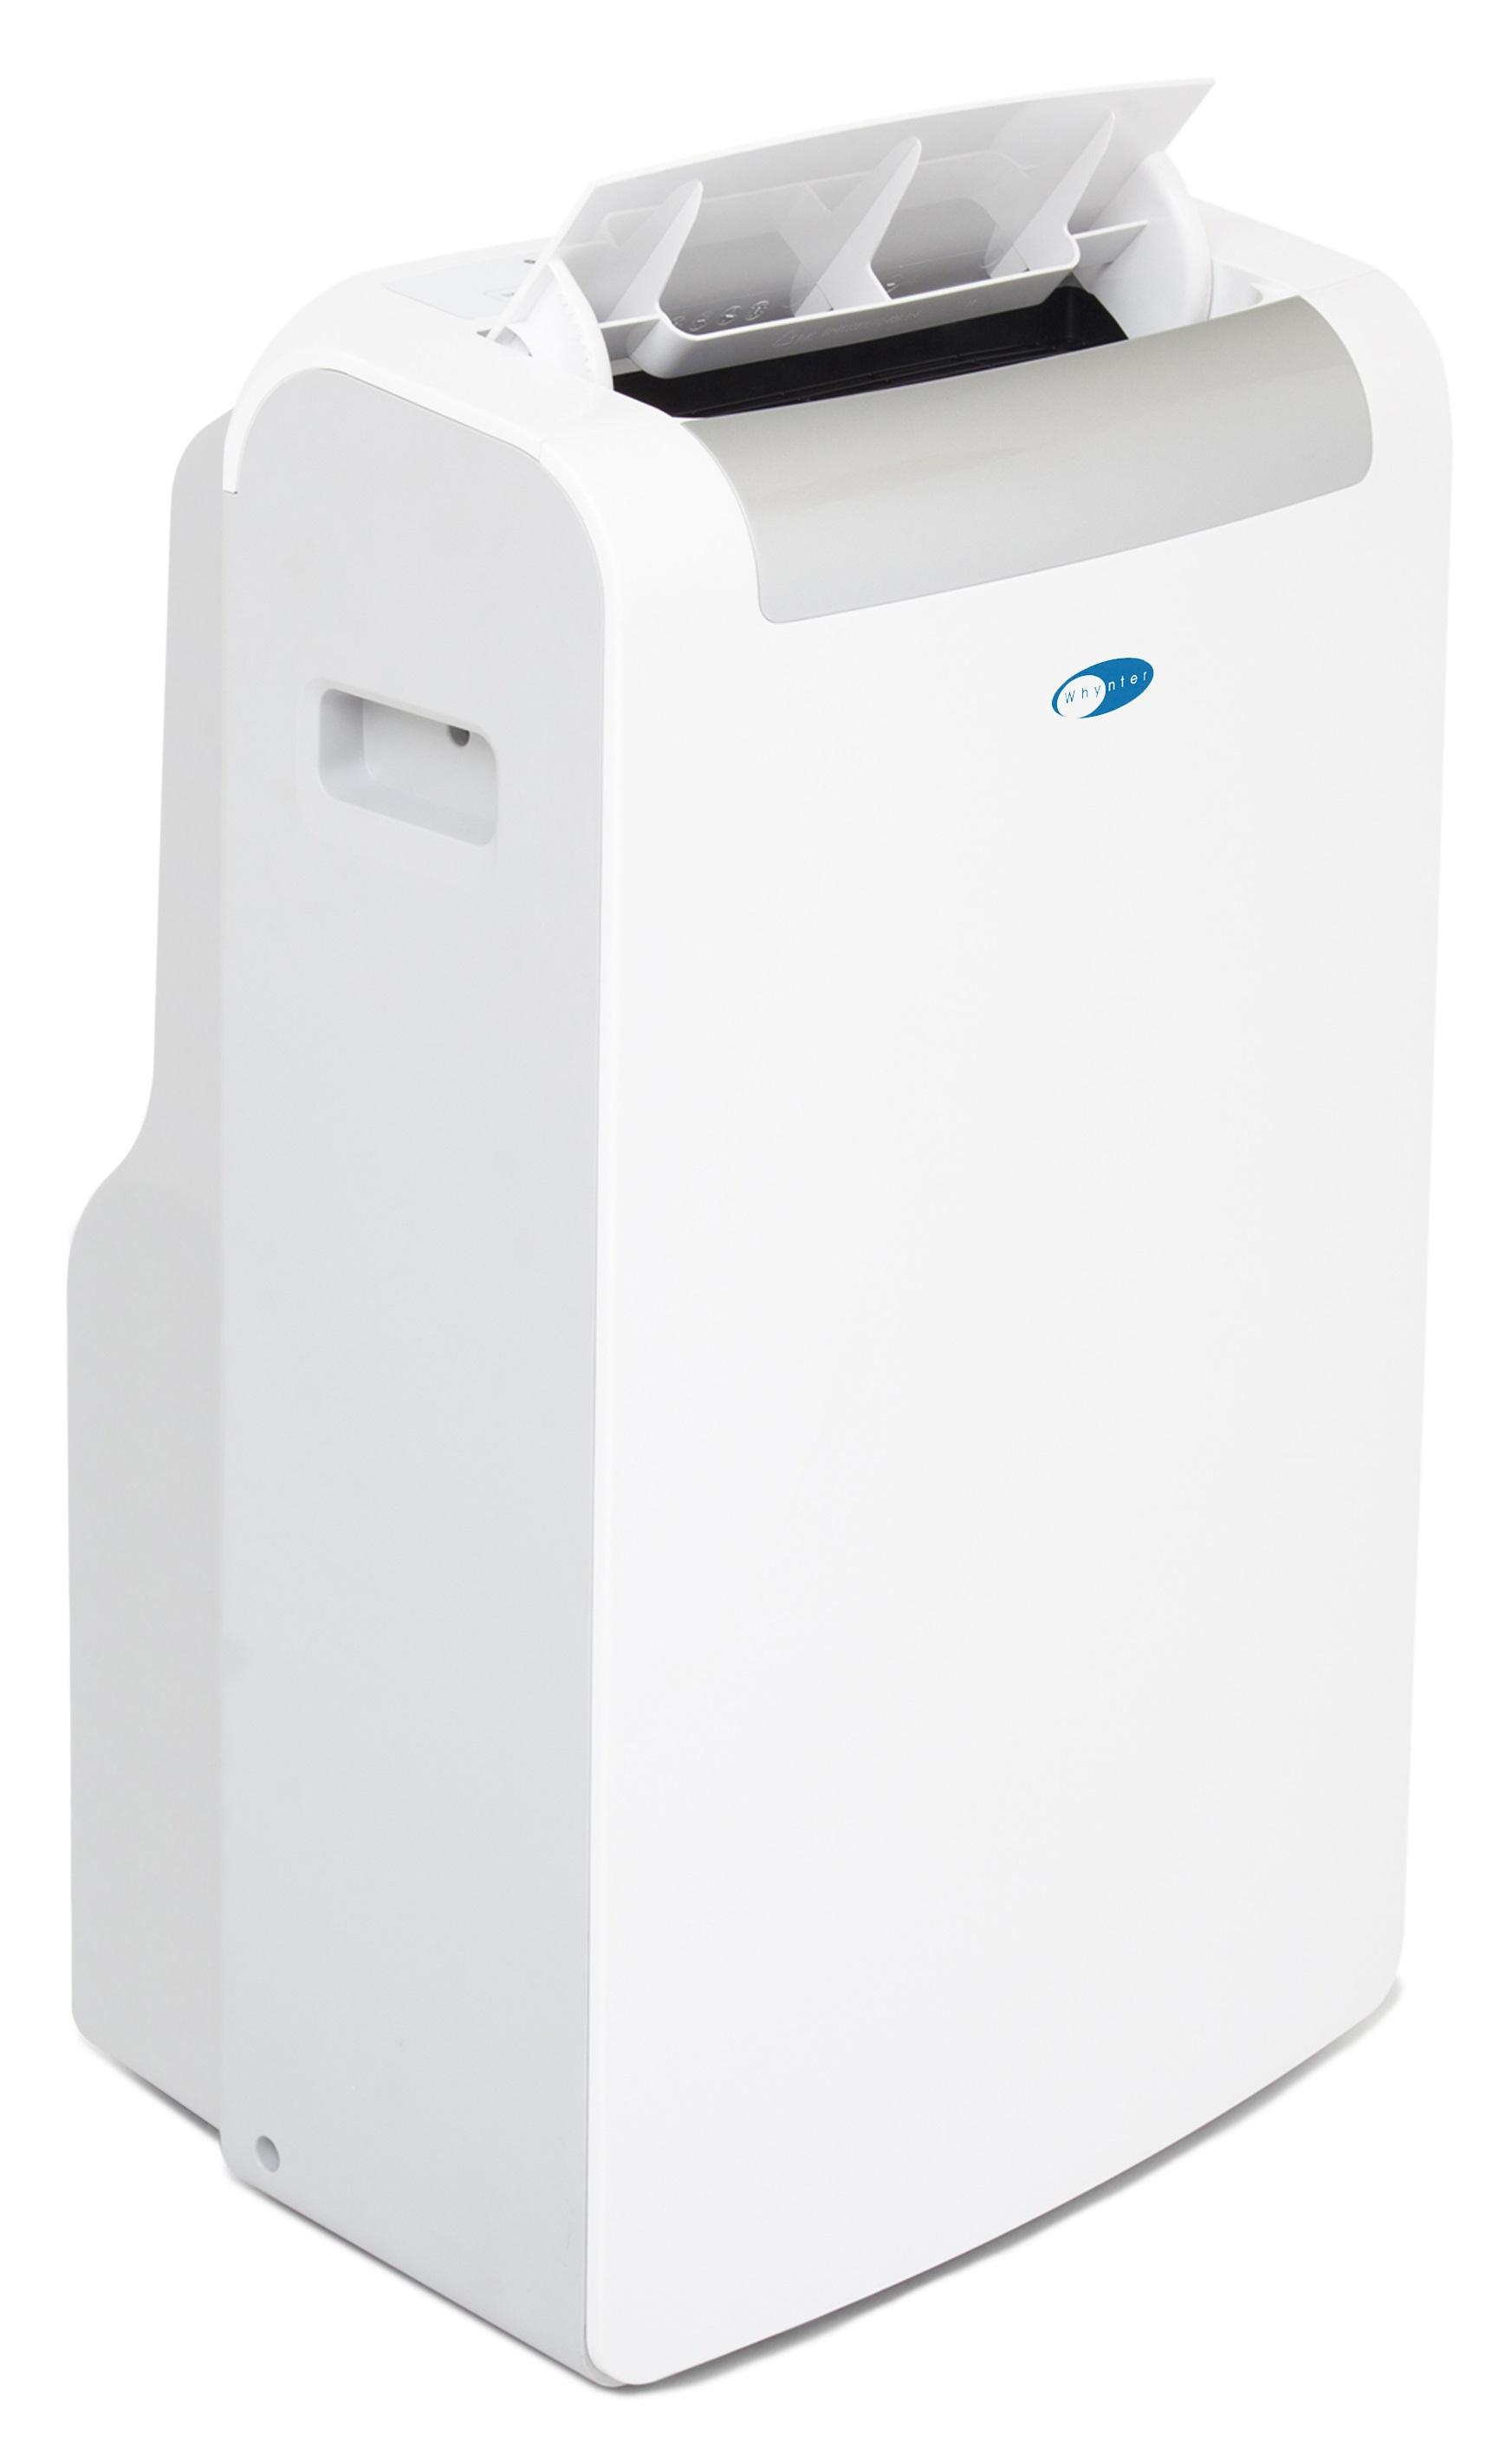 #0569A7 Amazon.com: Whynter ARC 148MHP Portable Air Conditioner  Top of The Line 13624 Portable Heat And Air Conditioner picture with 1745x2817 px on helpvideos.info - Air Conditioners, Air Coolers and more